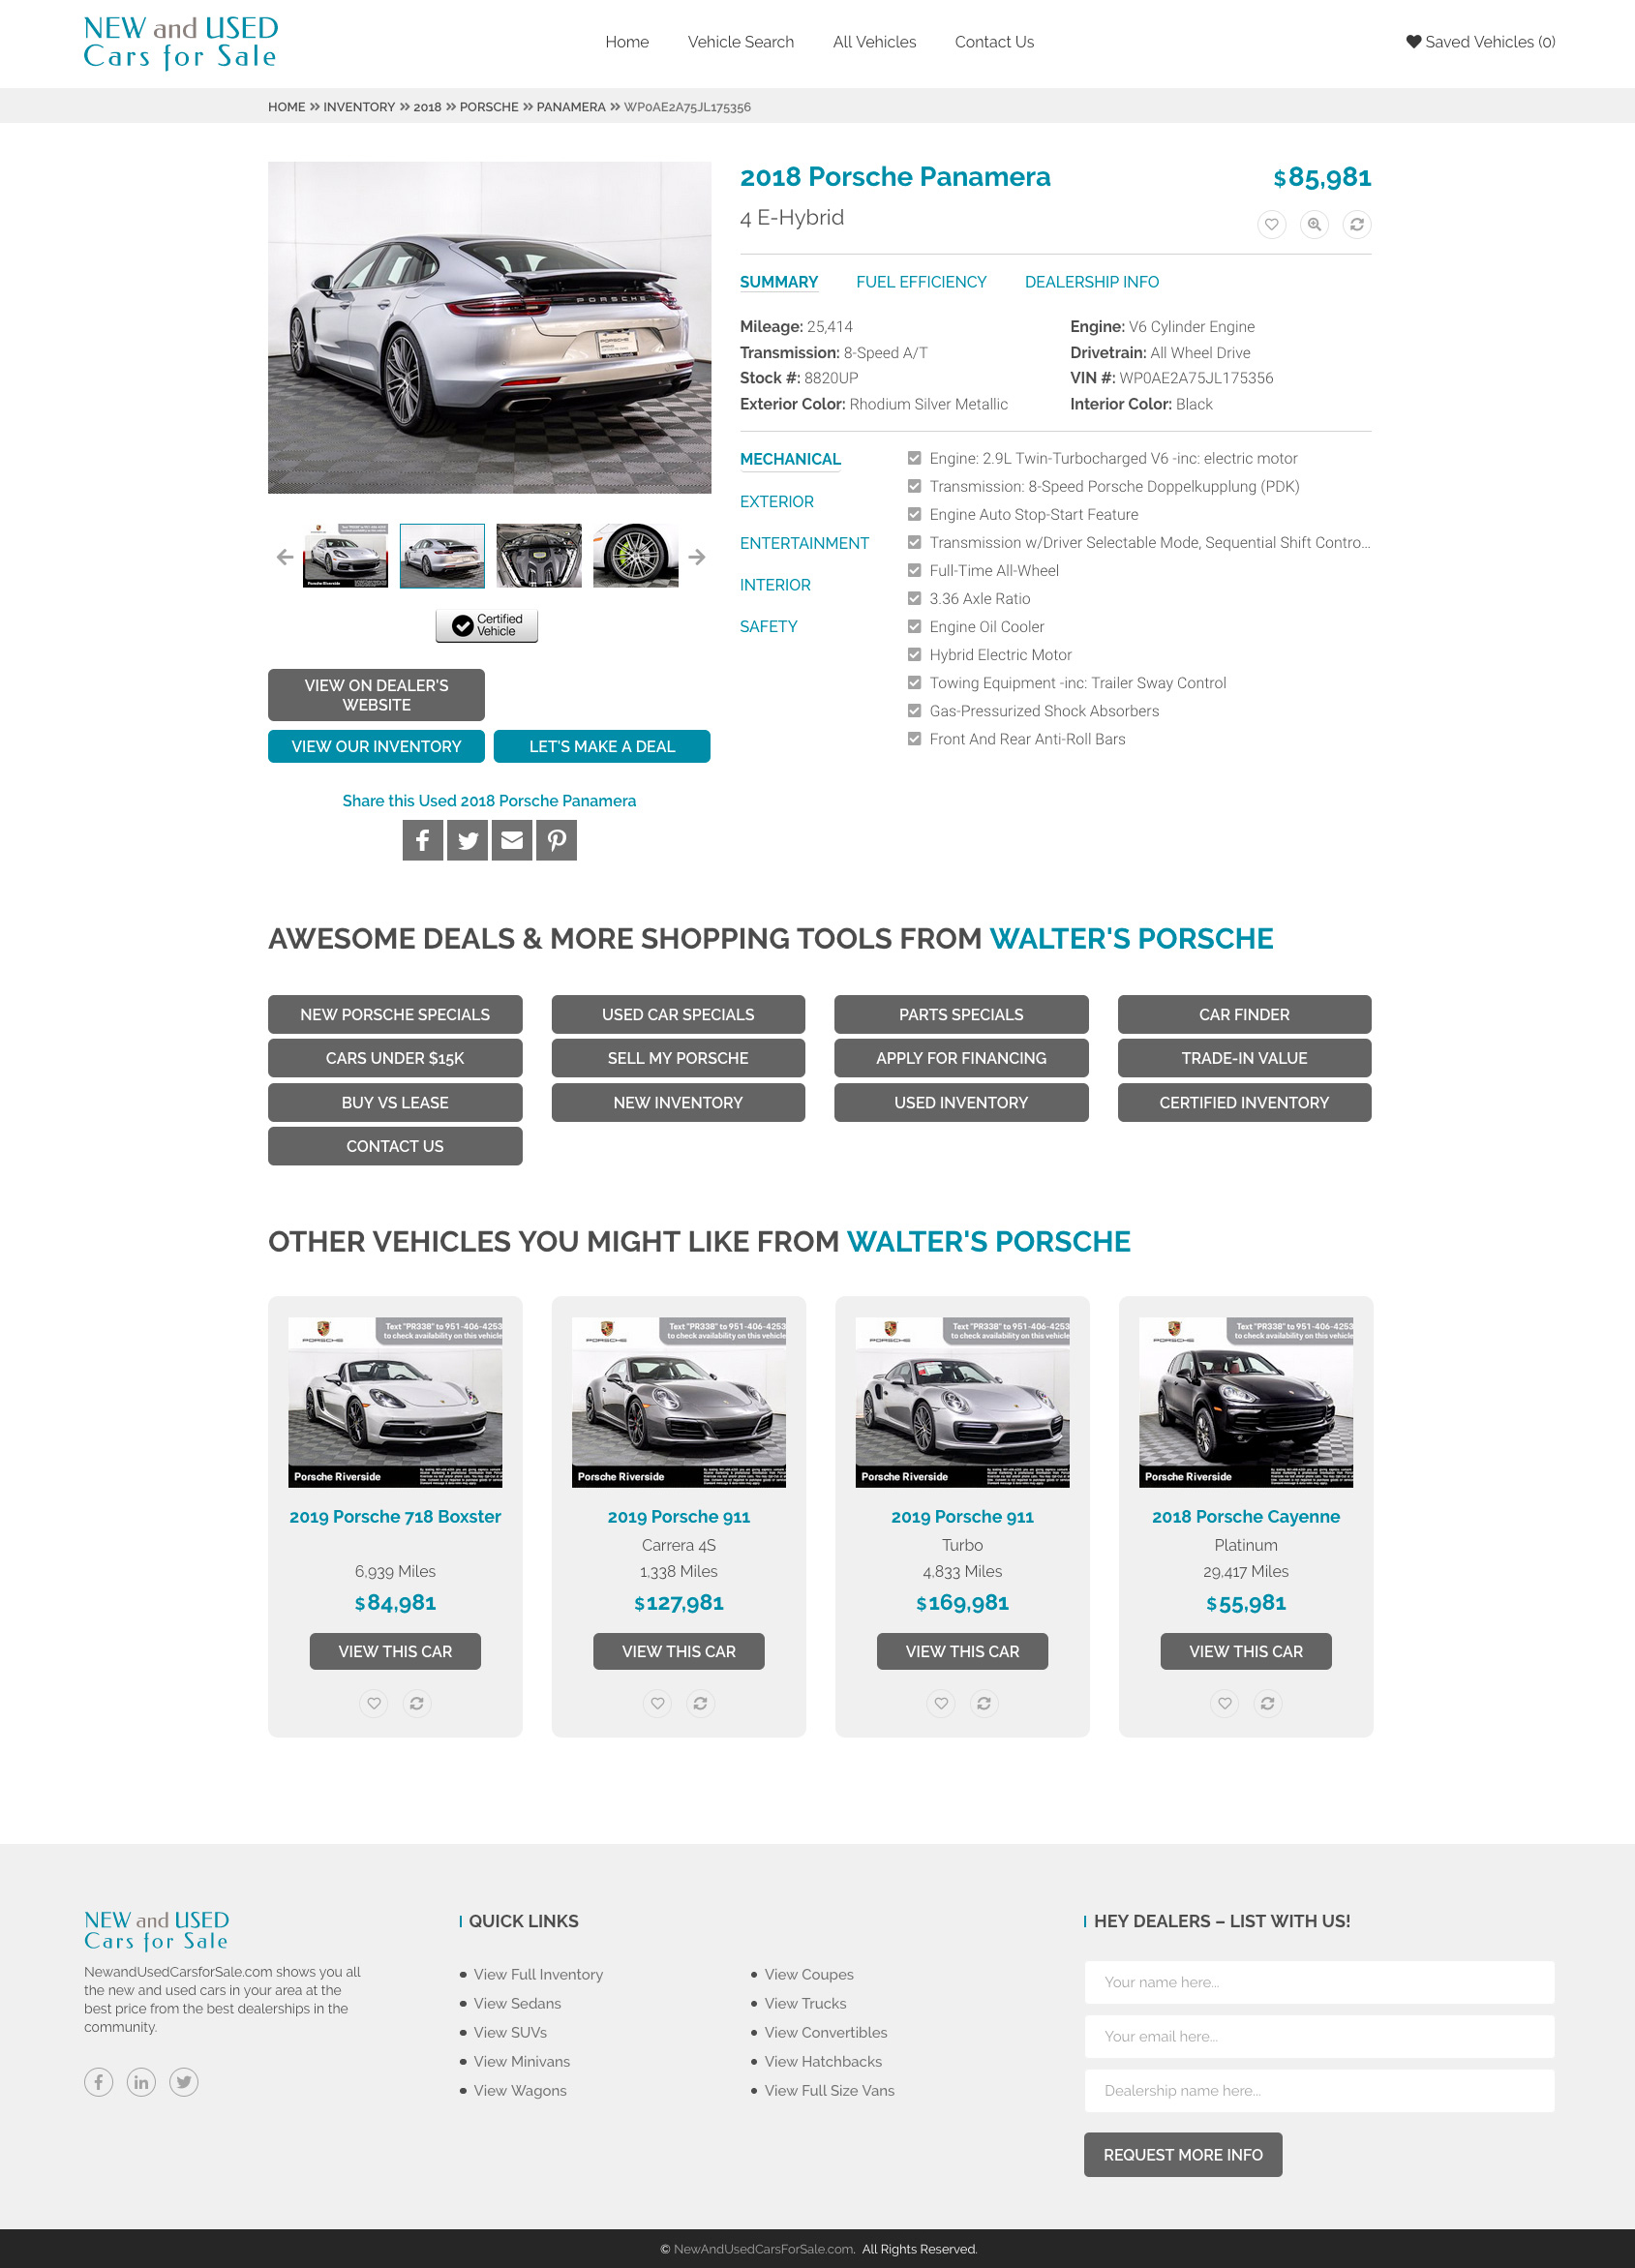 Vehicle detail page for New and Used Cars for Sale